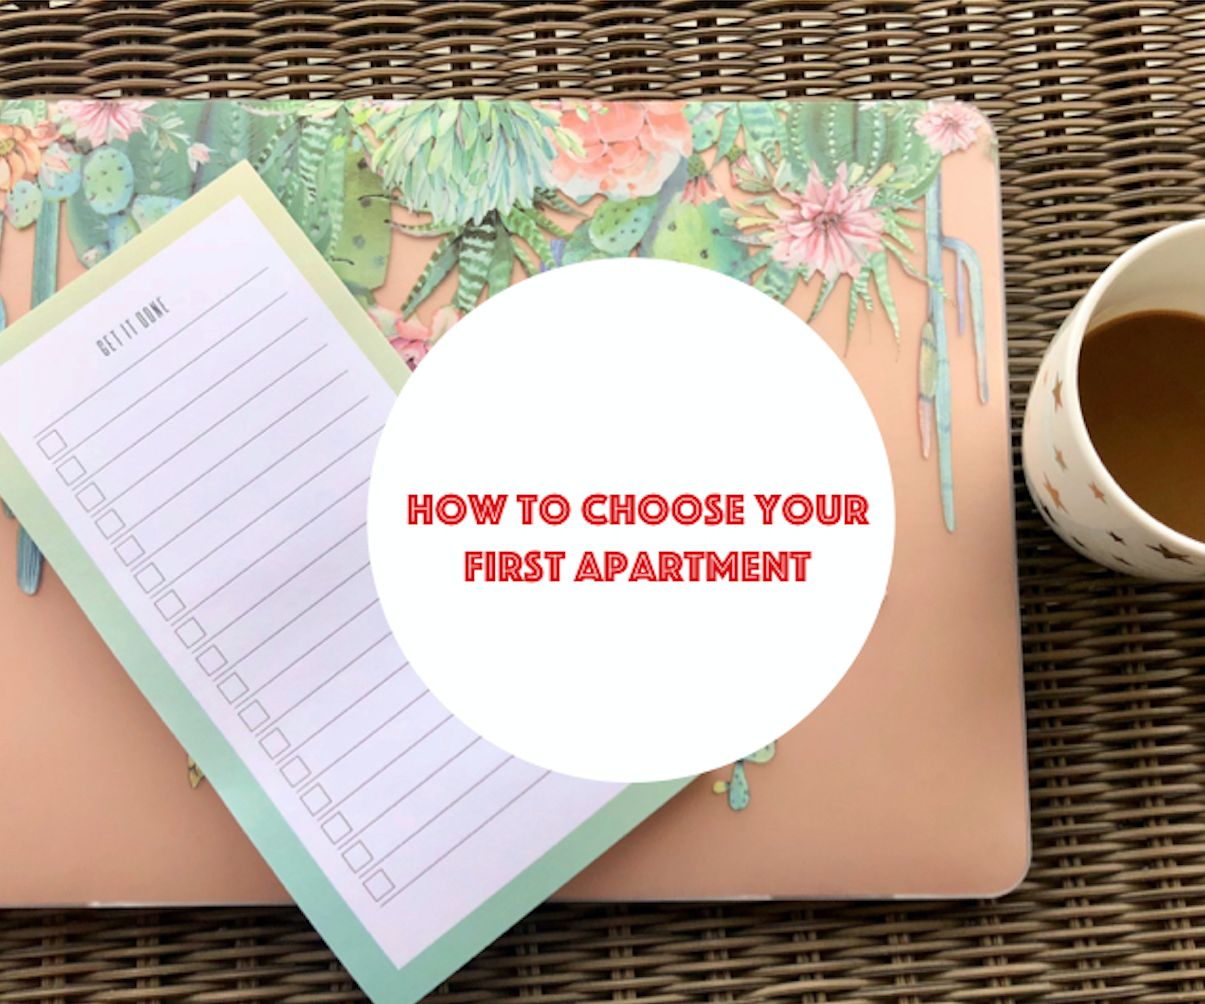 How to Choose Your First Apartment